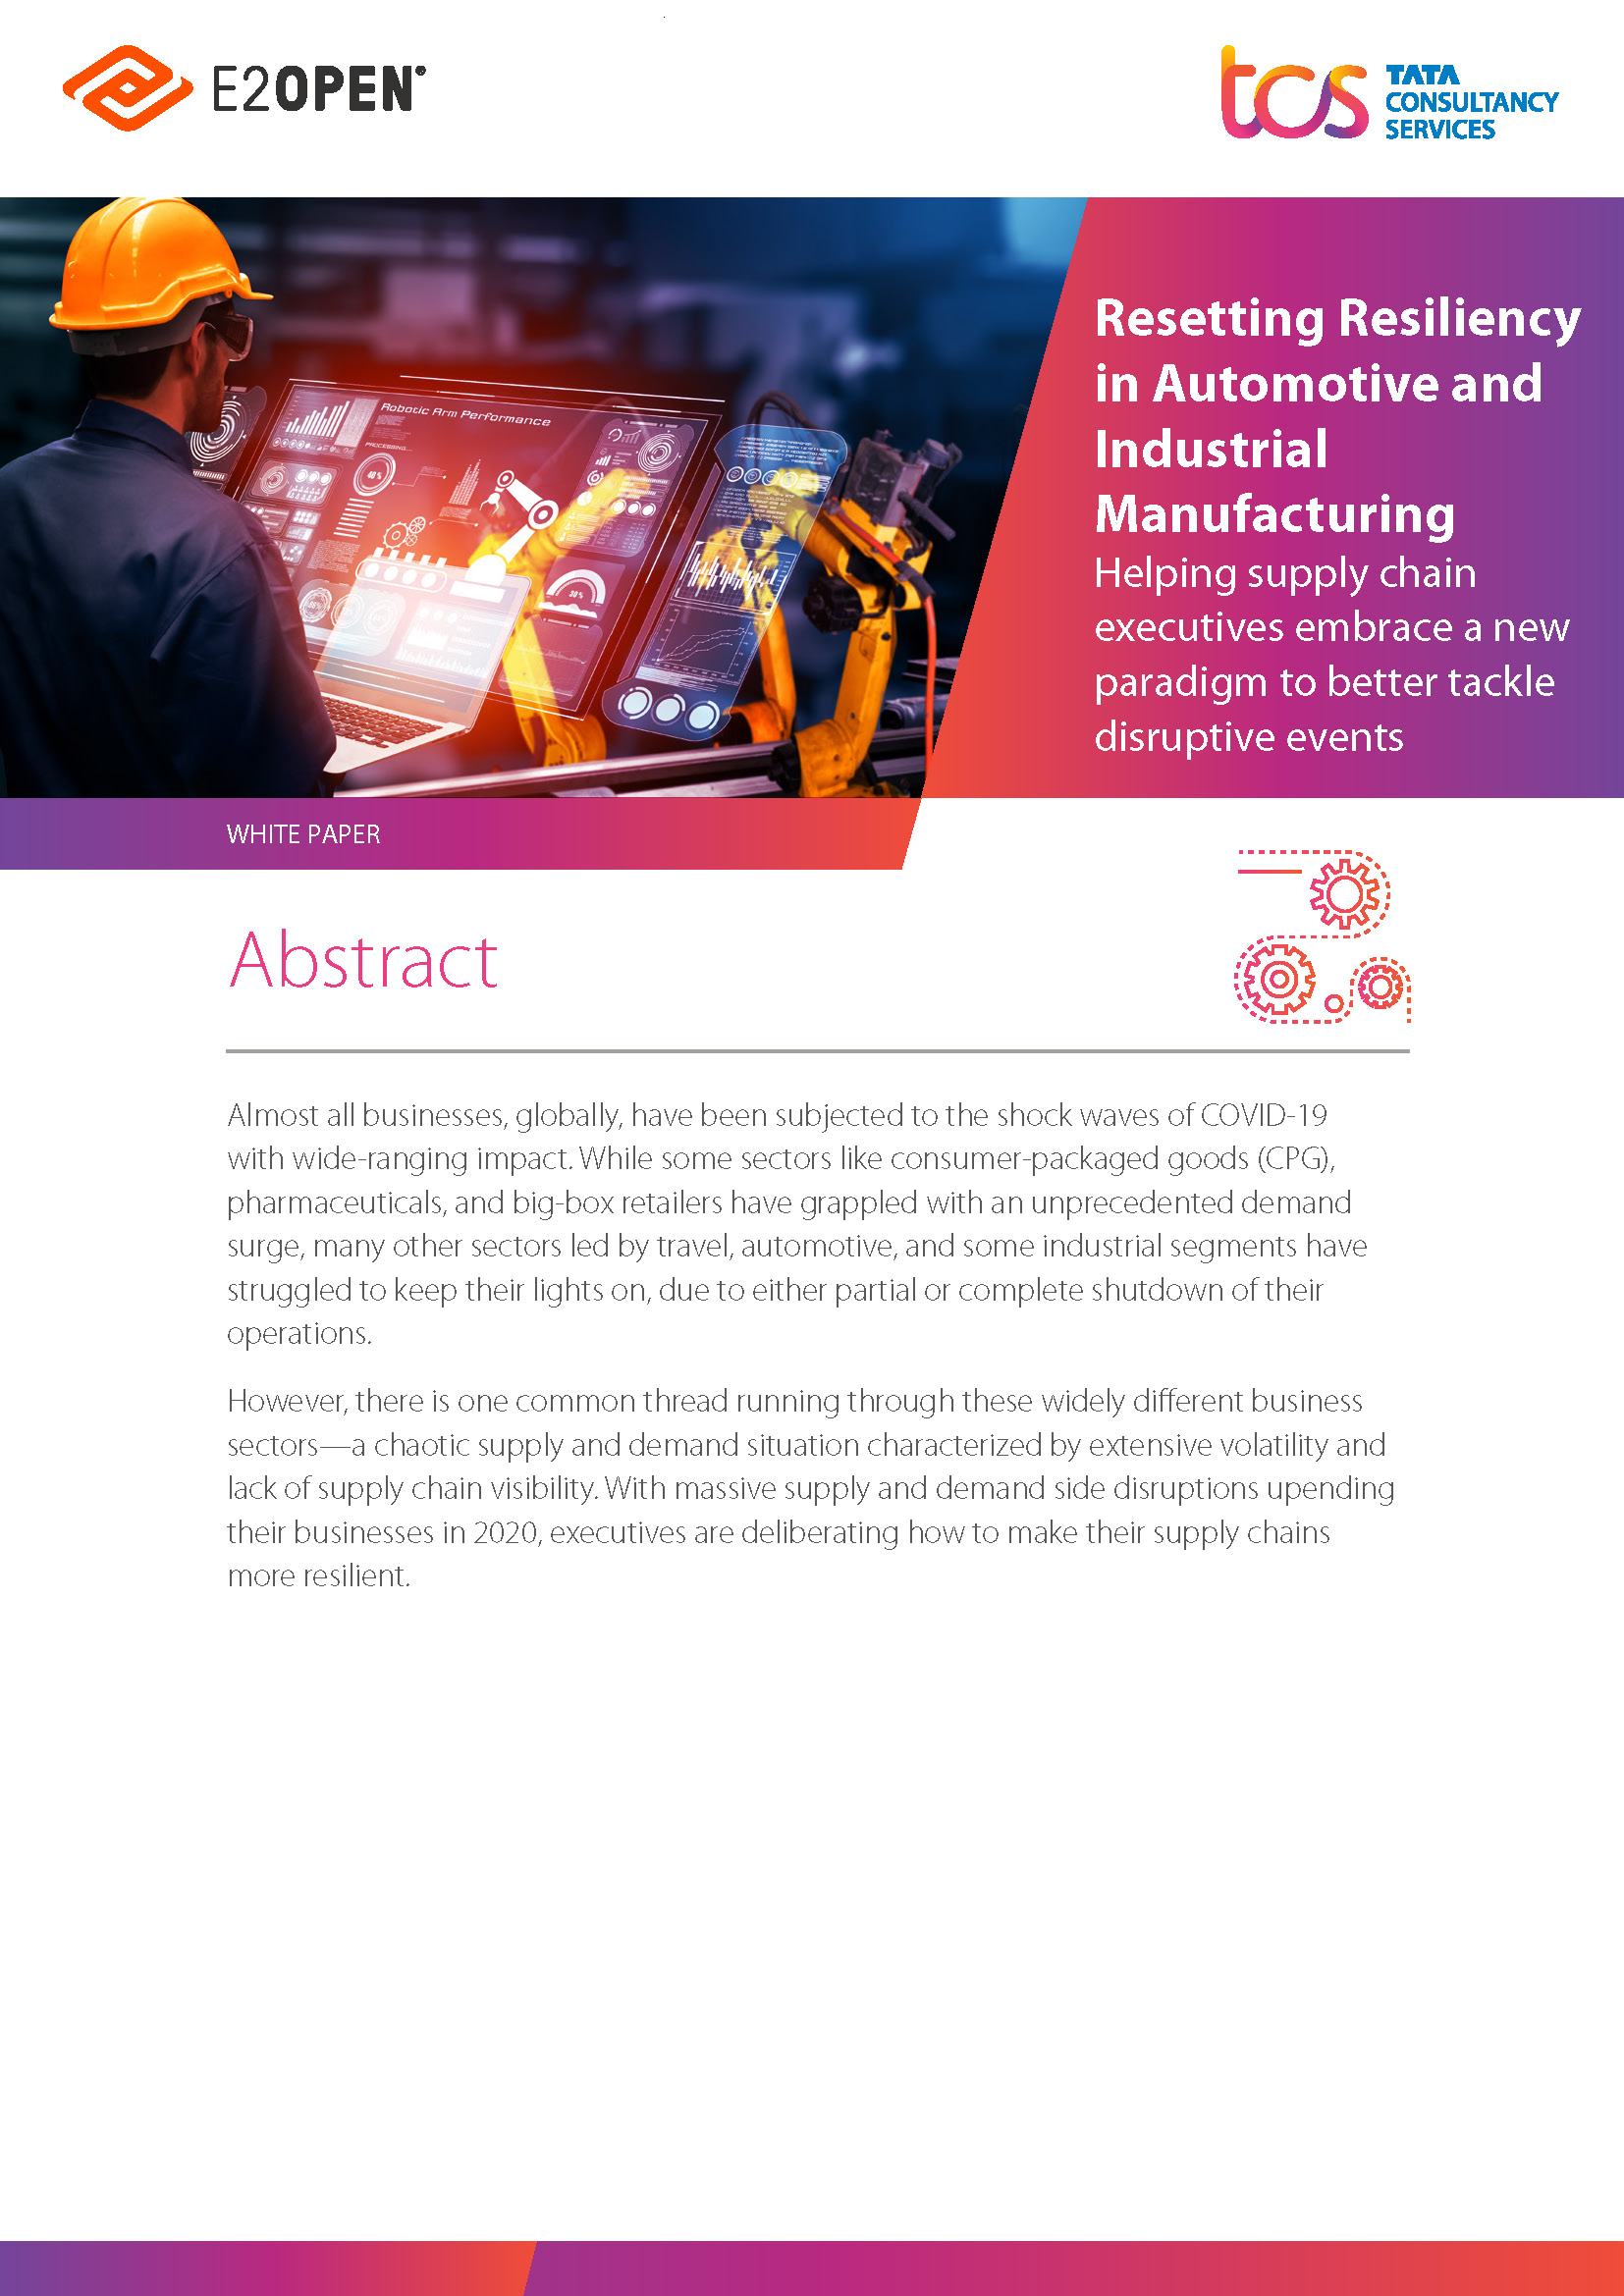 Resetting Resiliance in Automotive and Industrial Manufactring